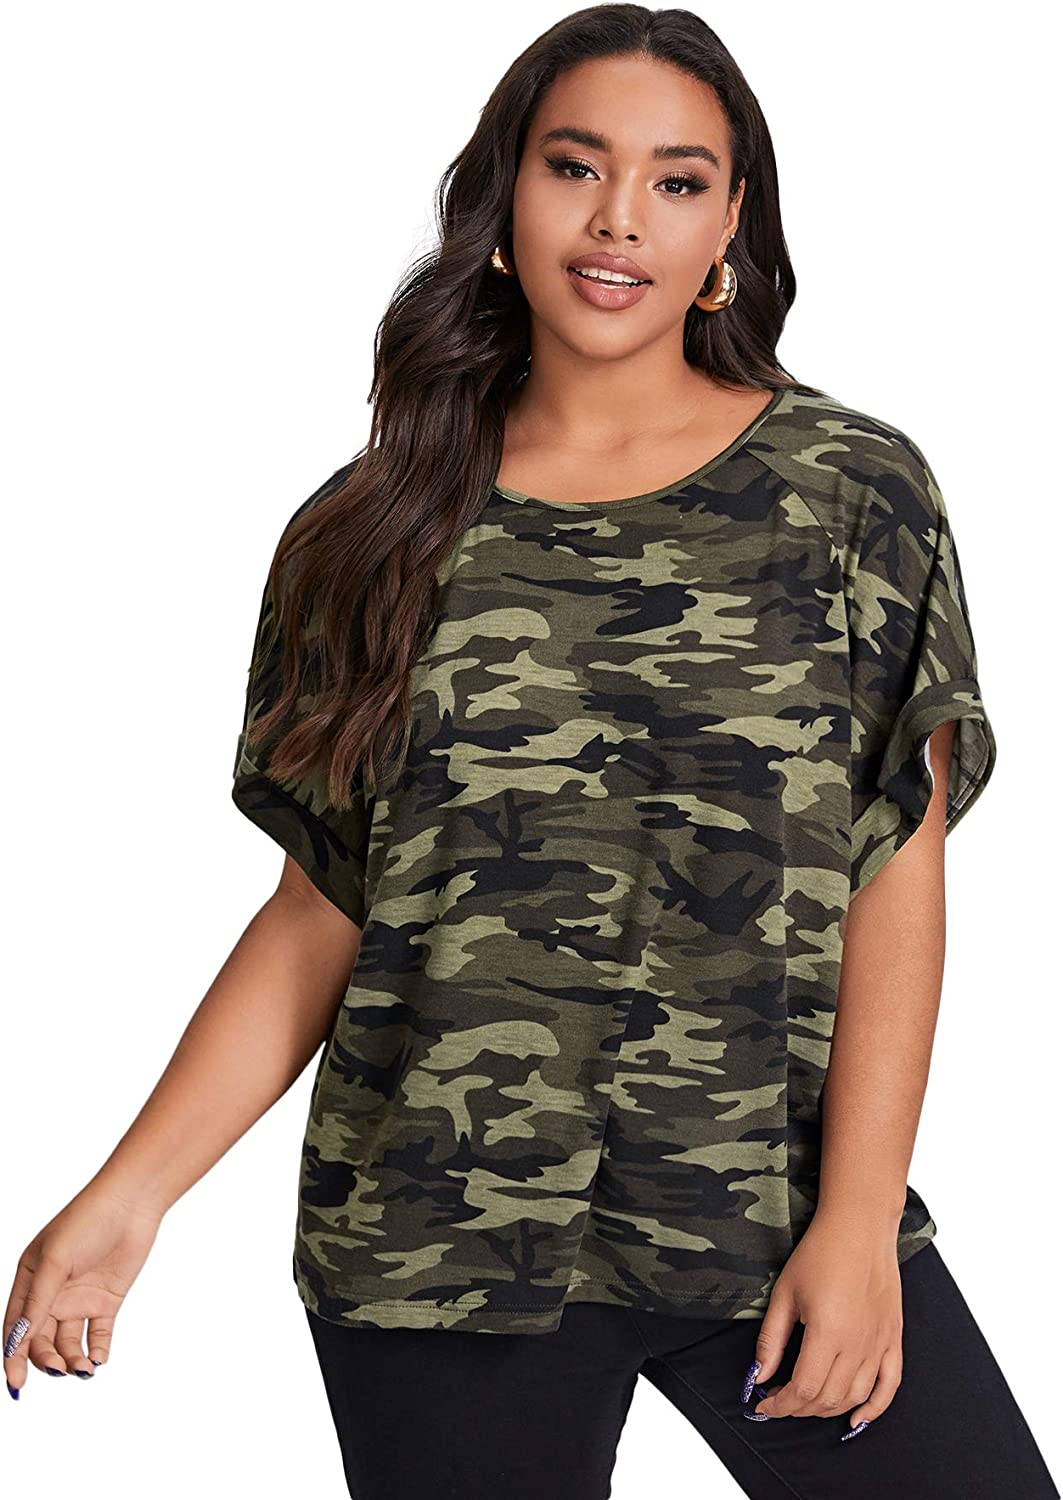 SOLY HUX Women's Plus Size Camo Print Short Sleeve T Shirt Casual Summer Tee Top